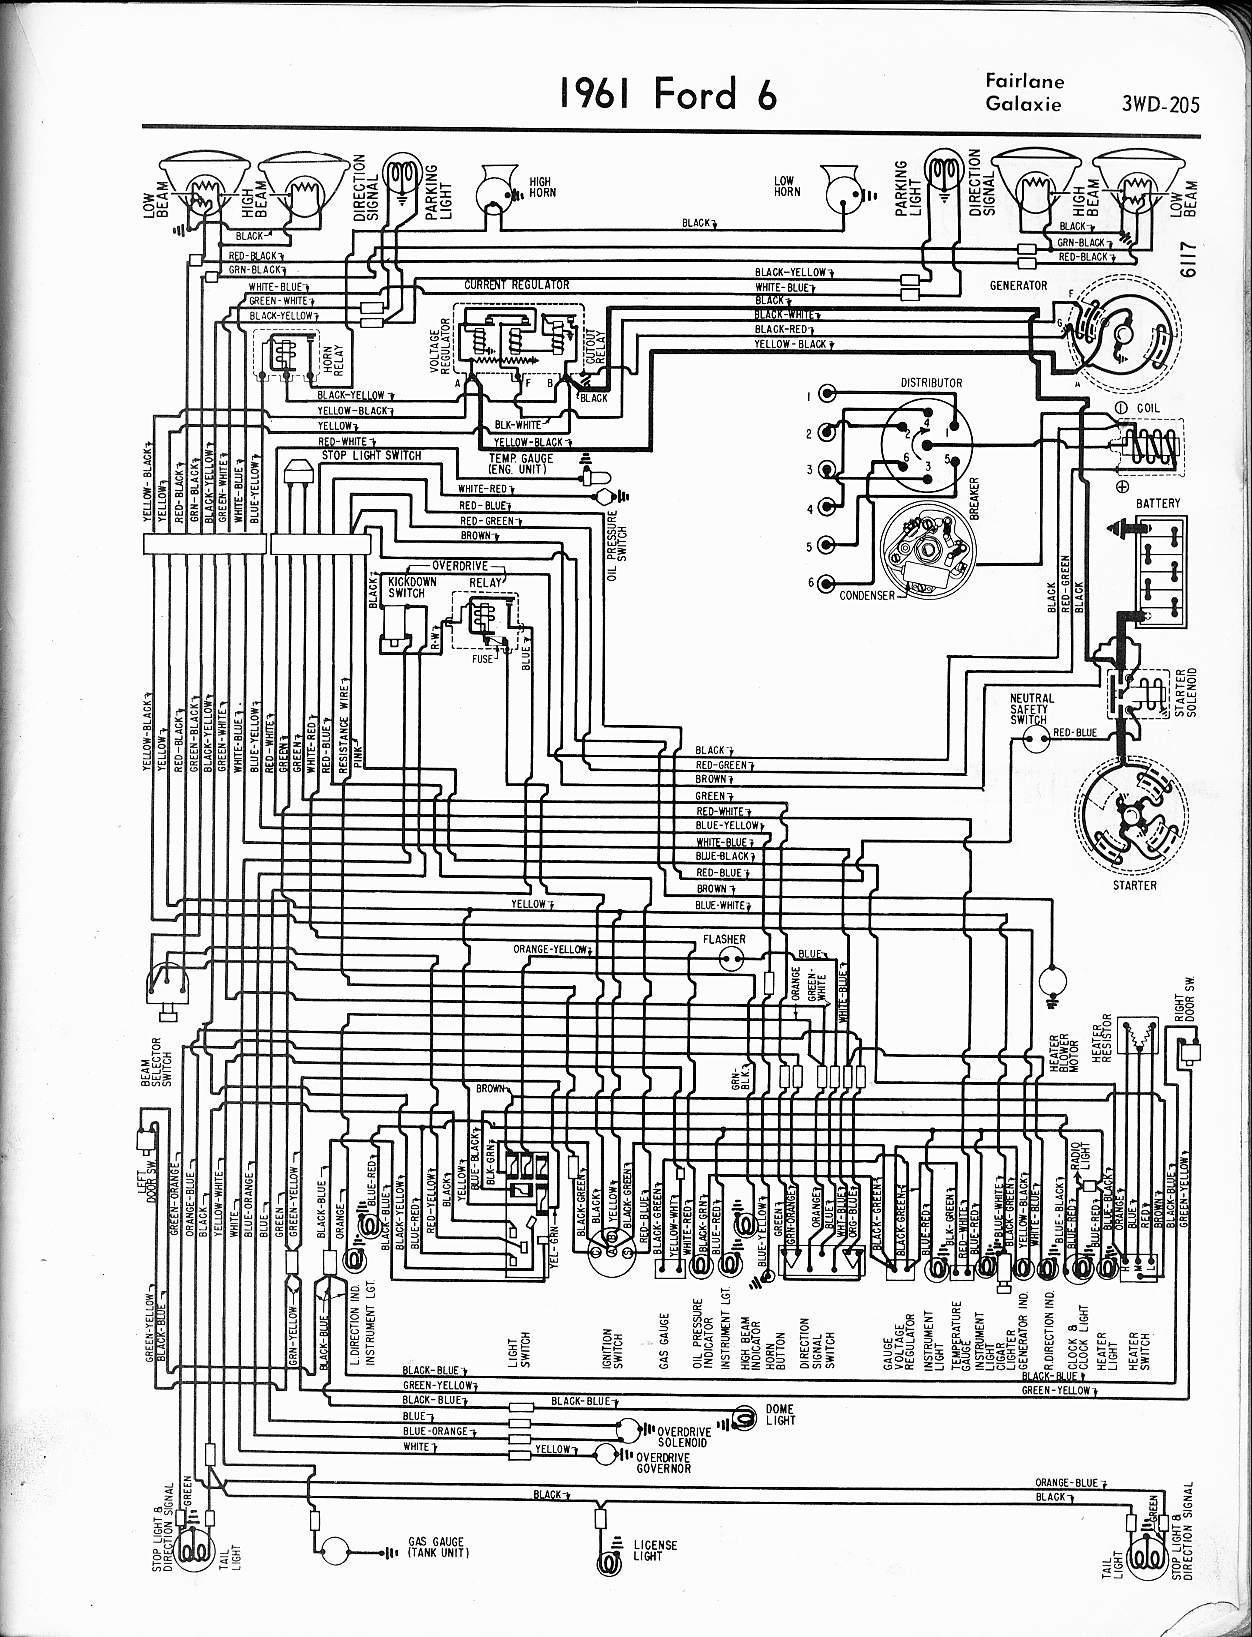 Xg Falcon Ute Fuse Box : Car ford falcon ignition switch wiring diagram ranchero xg